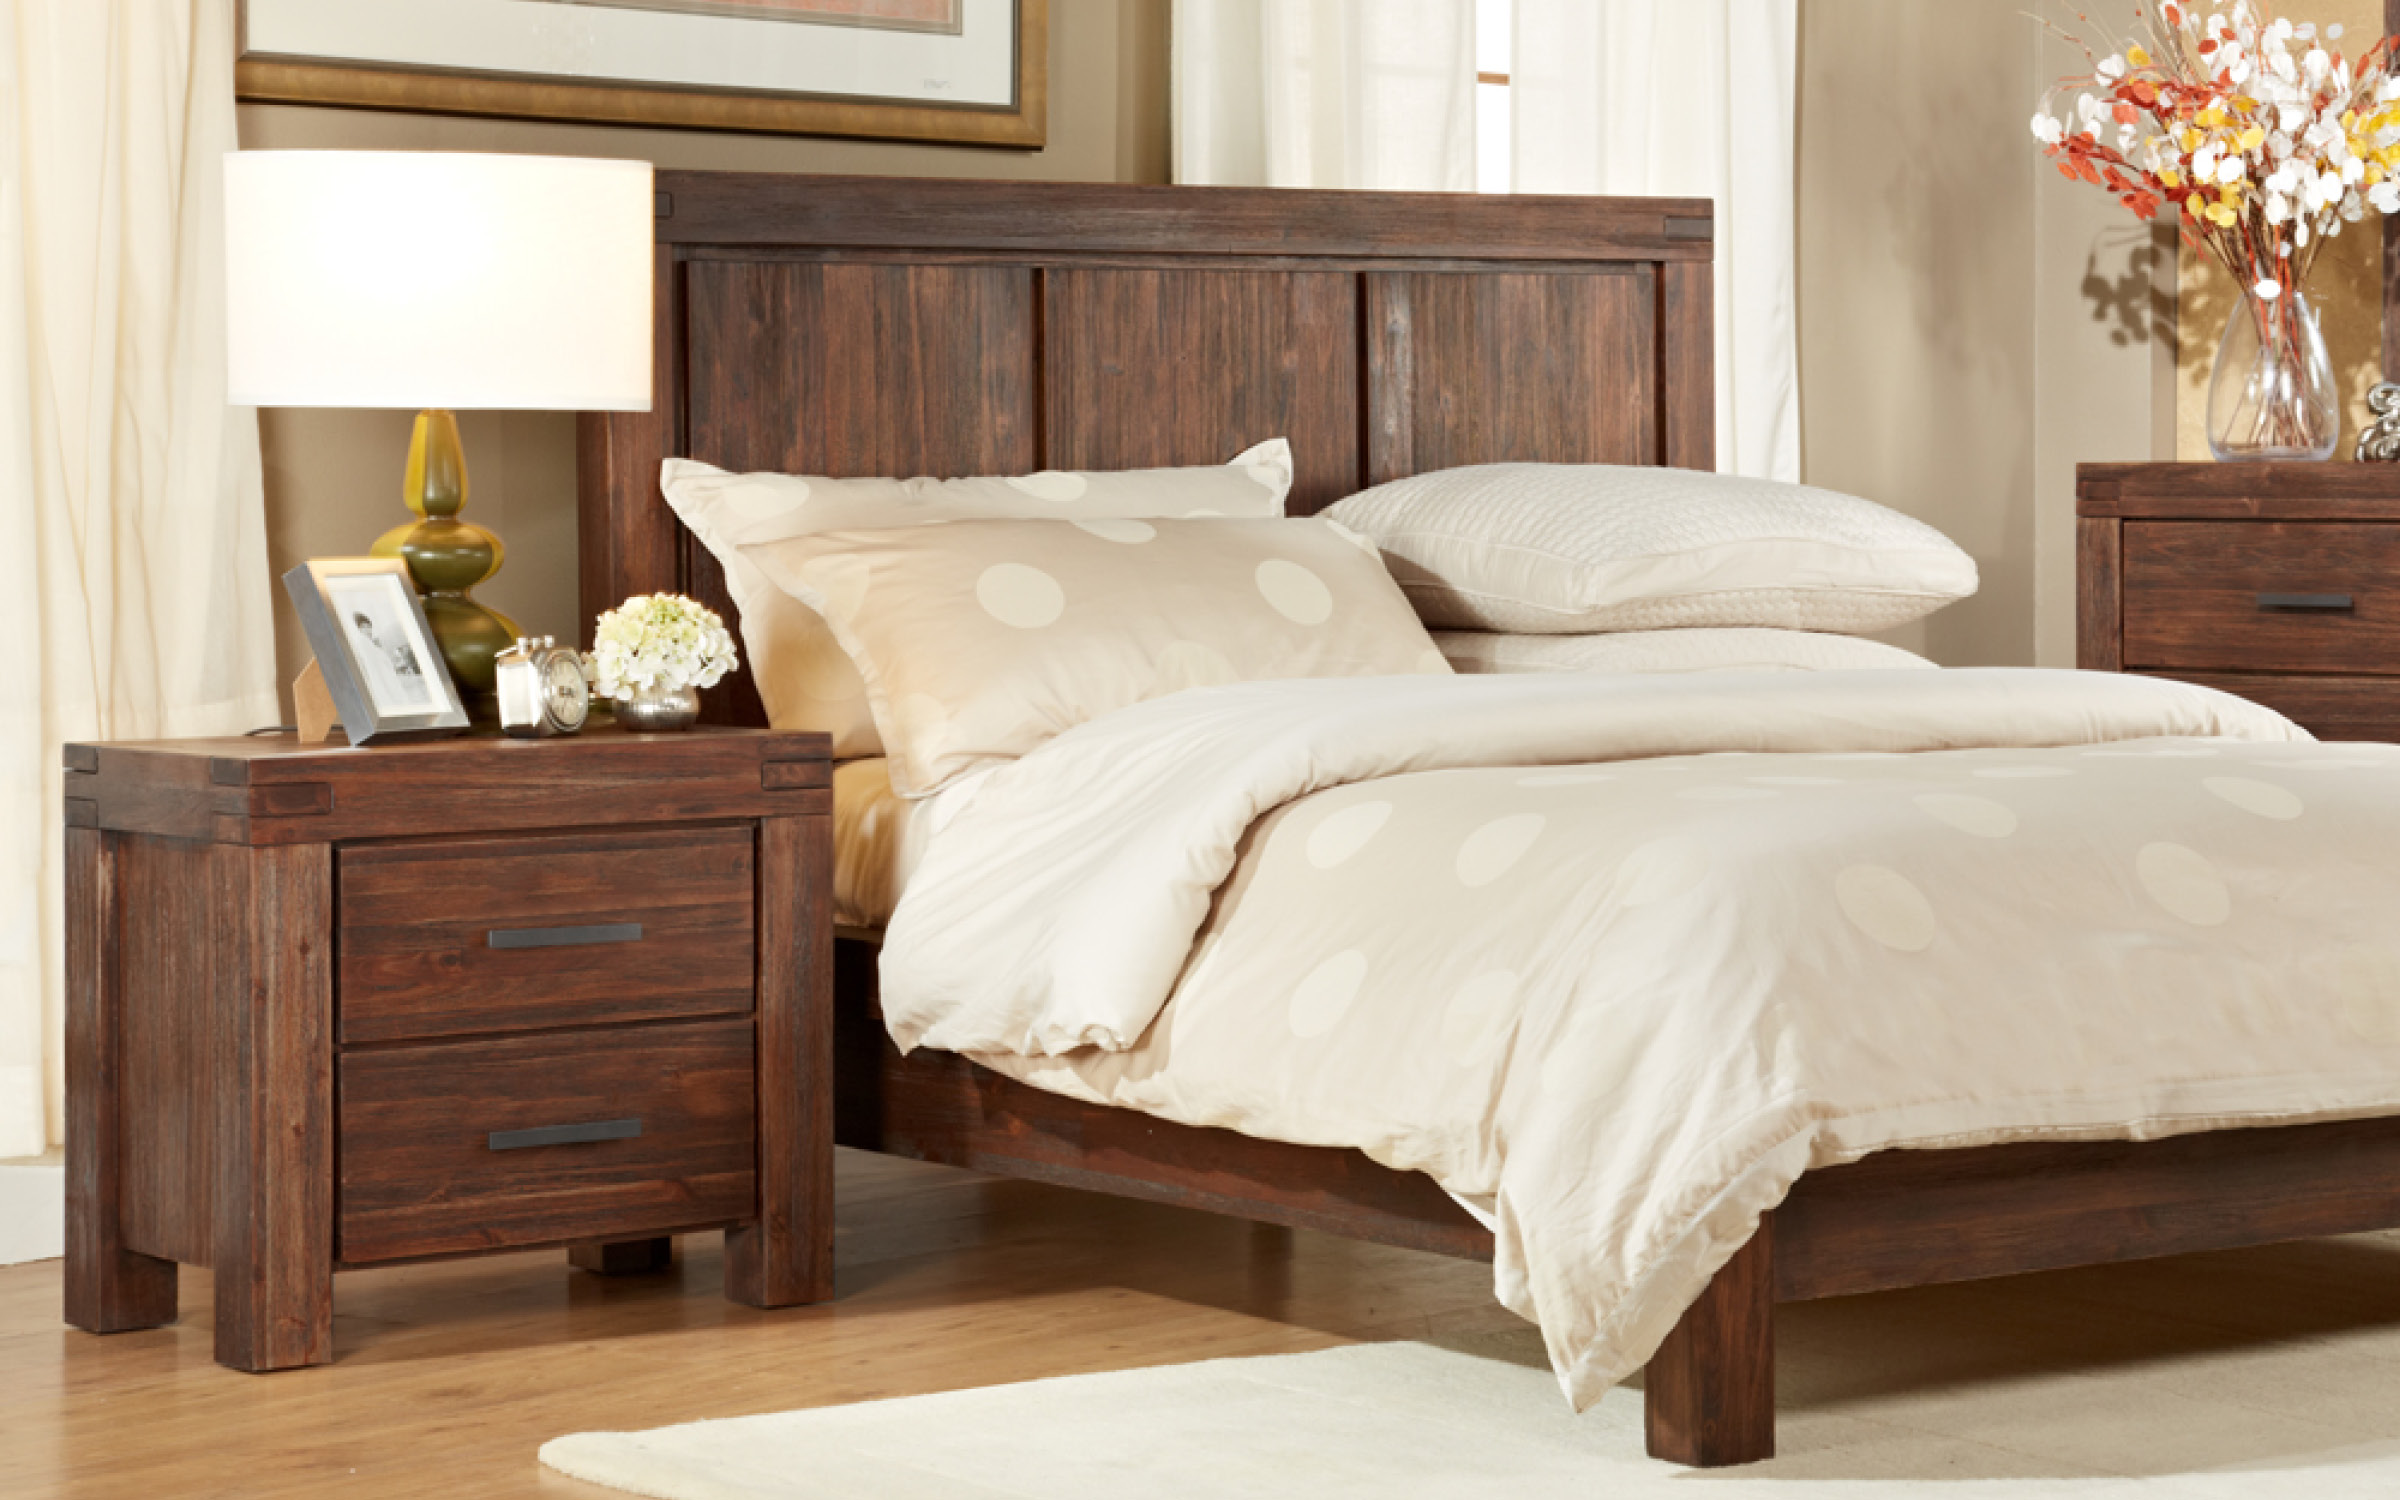 Modus Wood Bedframe | iFurnish, Frisco, CO